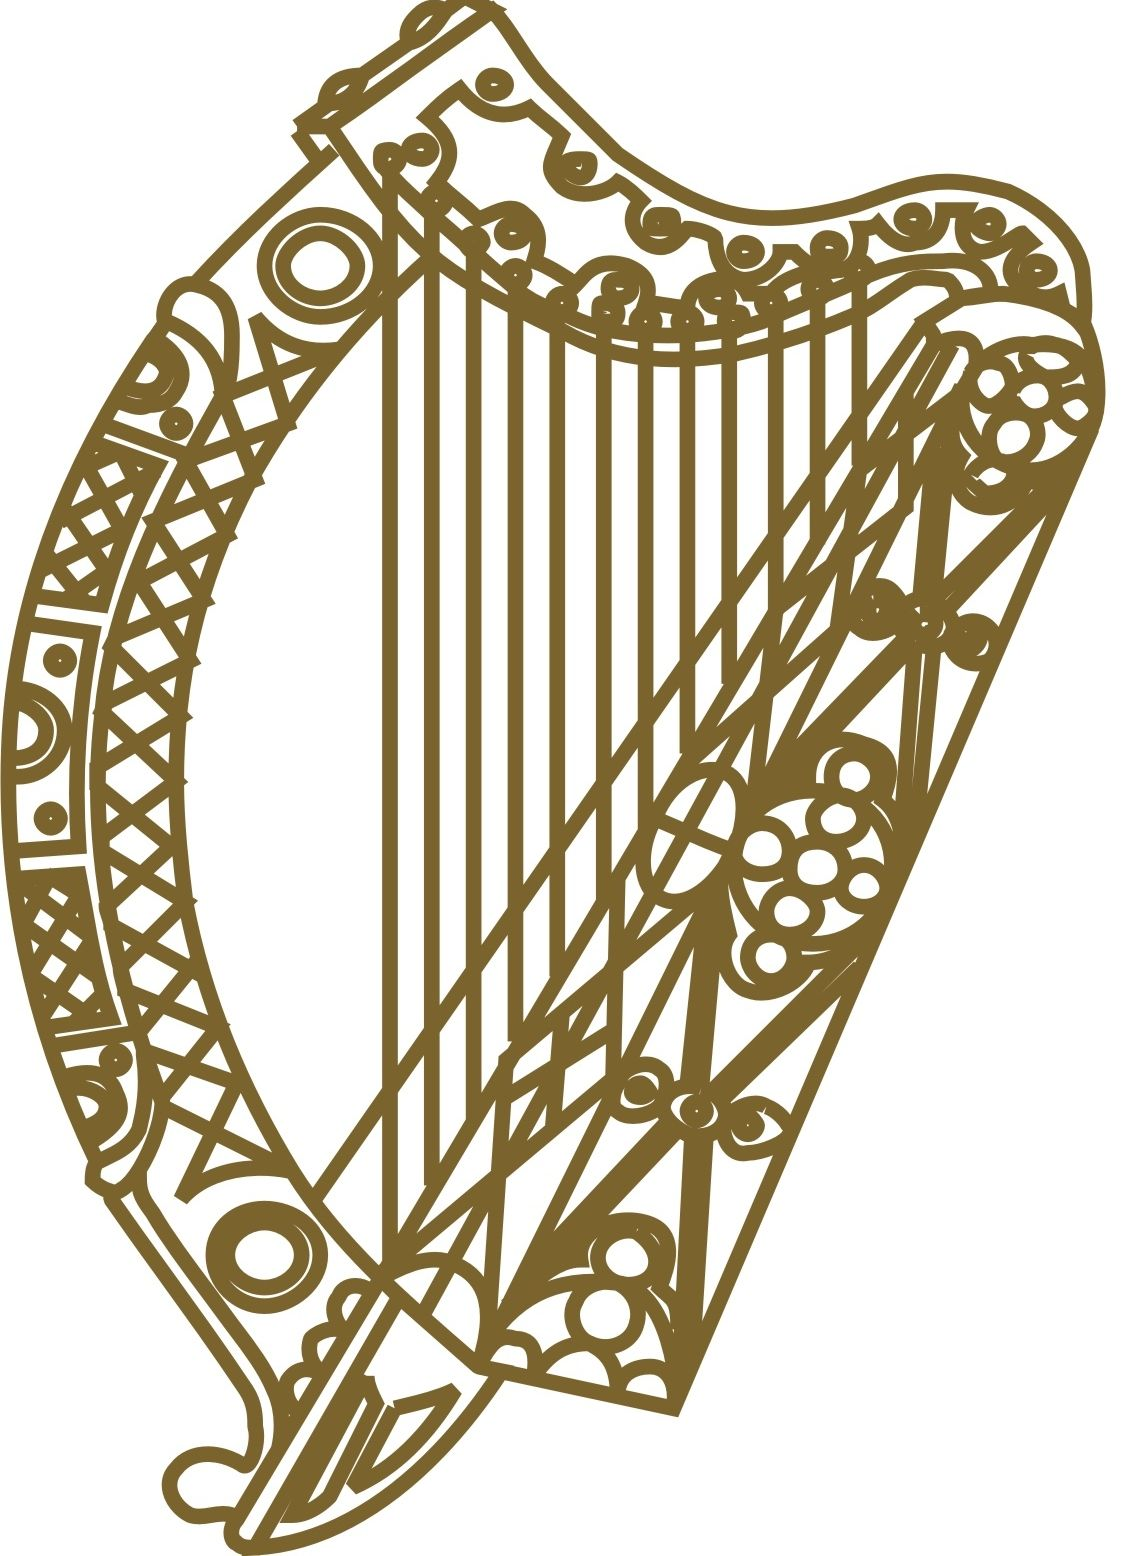 irish harp - inside the heart on the claddagh | My Irish World ...